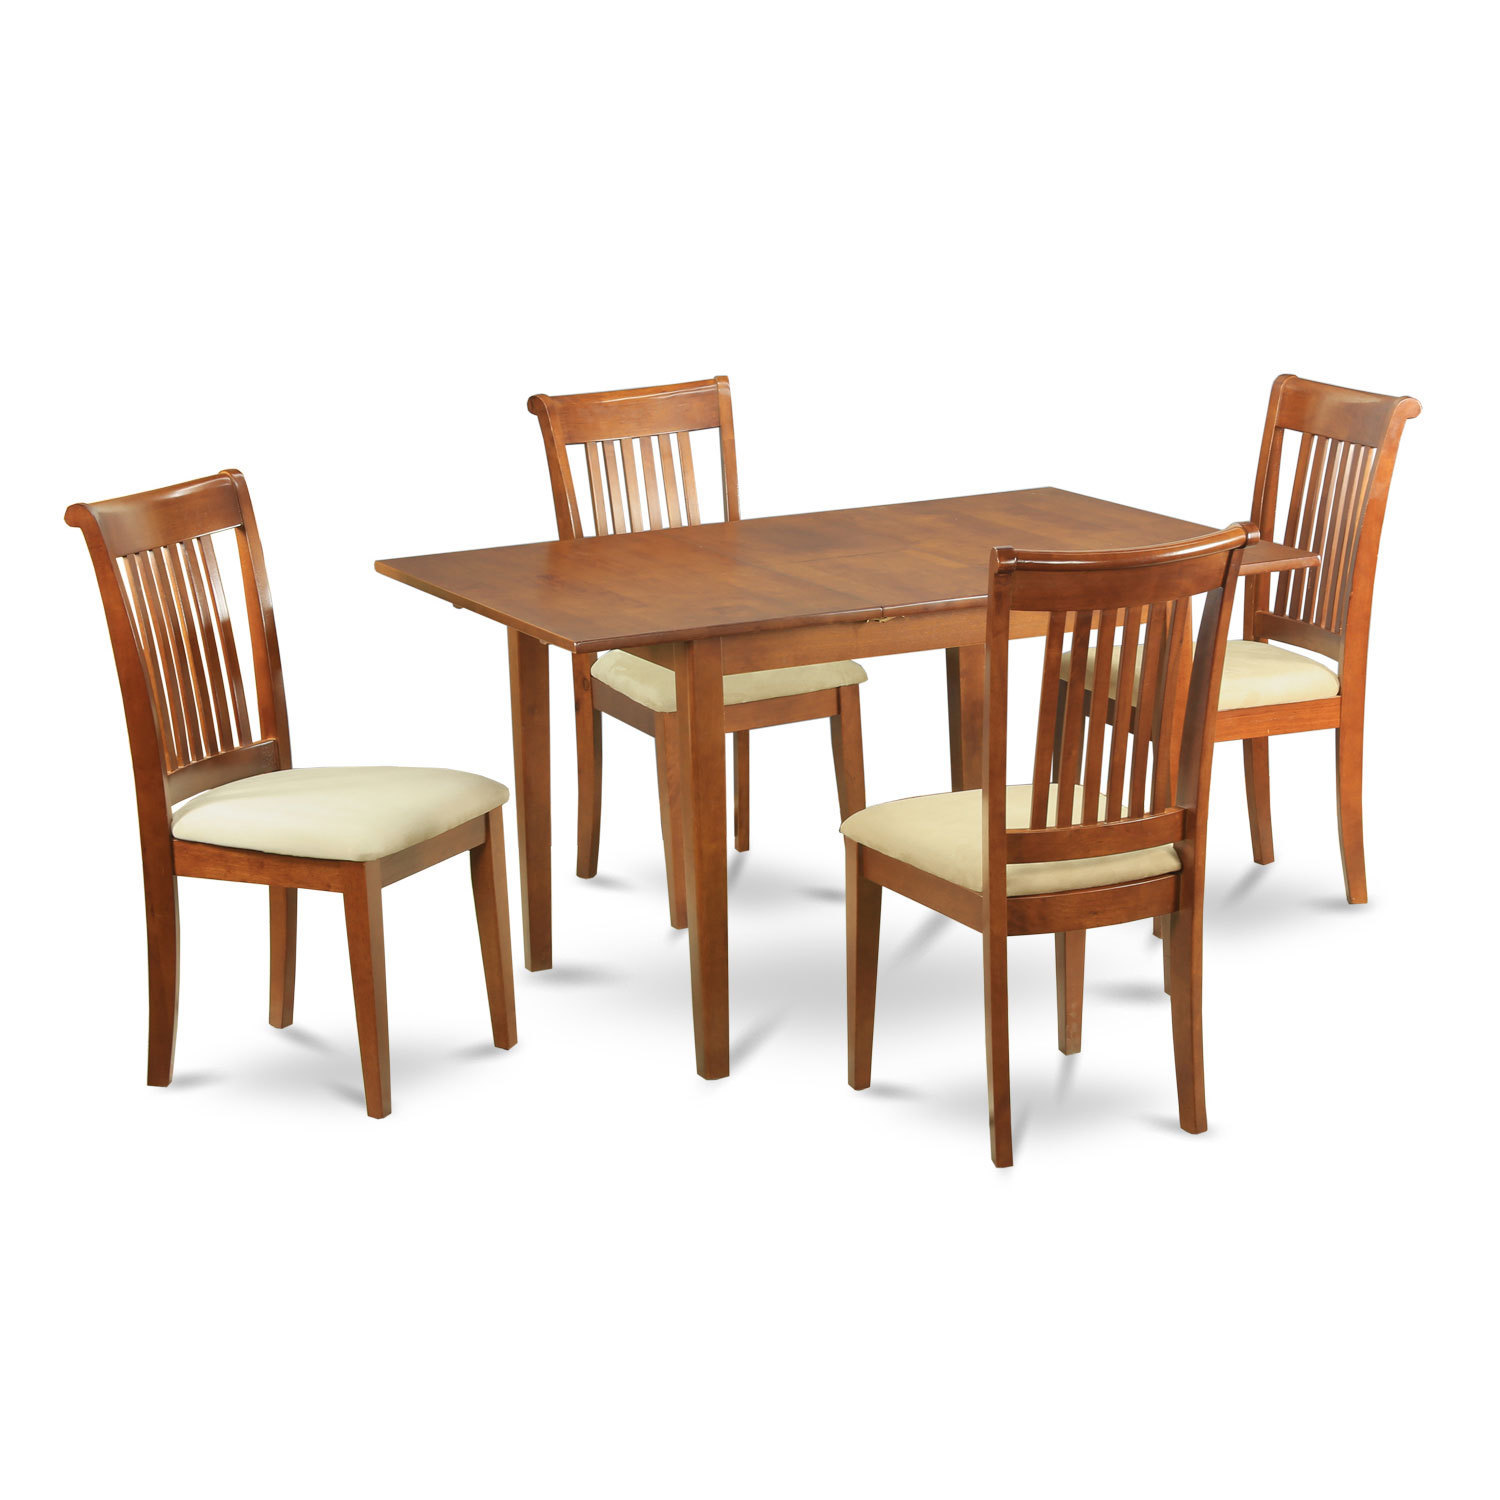 Small dinette set design homesfeed for Small dining room table and chairs